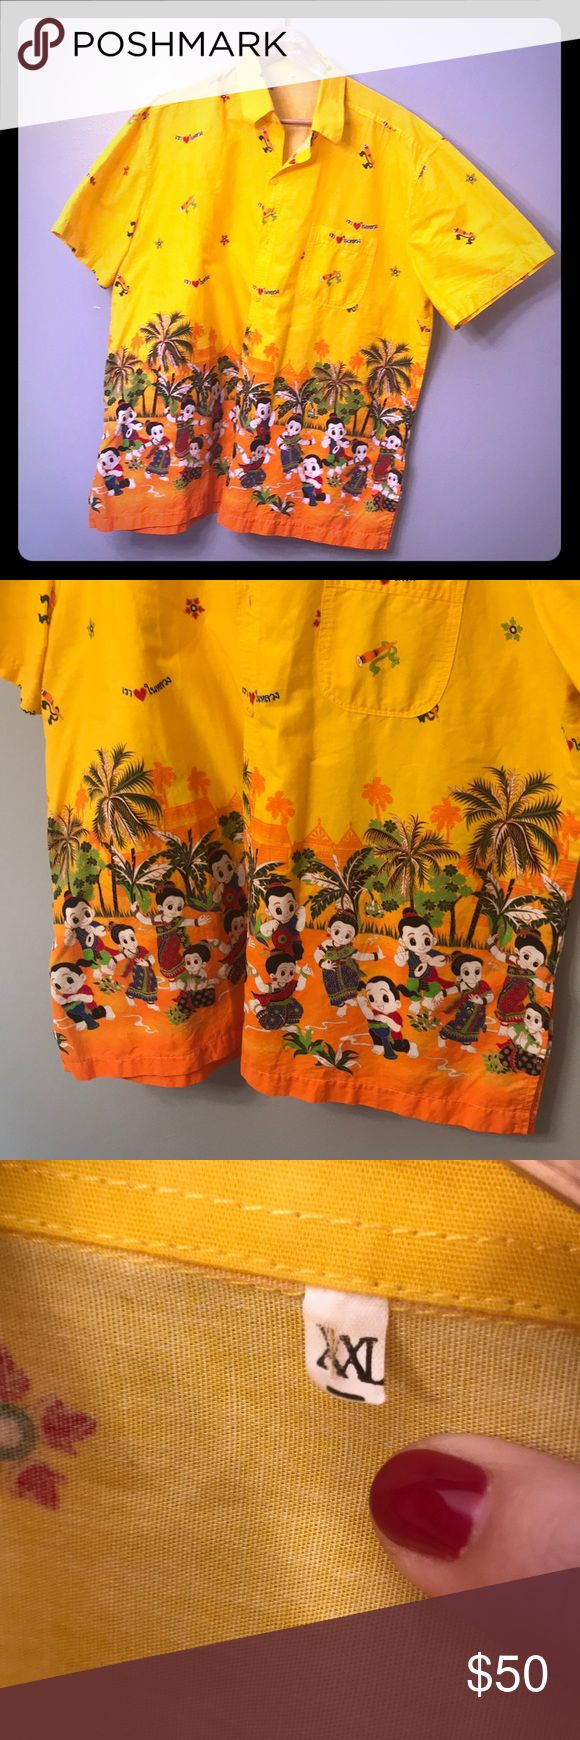 XXL yellow men's casual style funky tropical shirt See photos for details and measurements (#2208) Great for frat party 🎉 XXL Shirts Casual Button Down Shirts